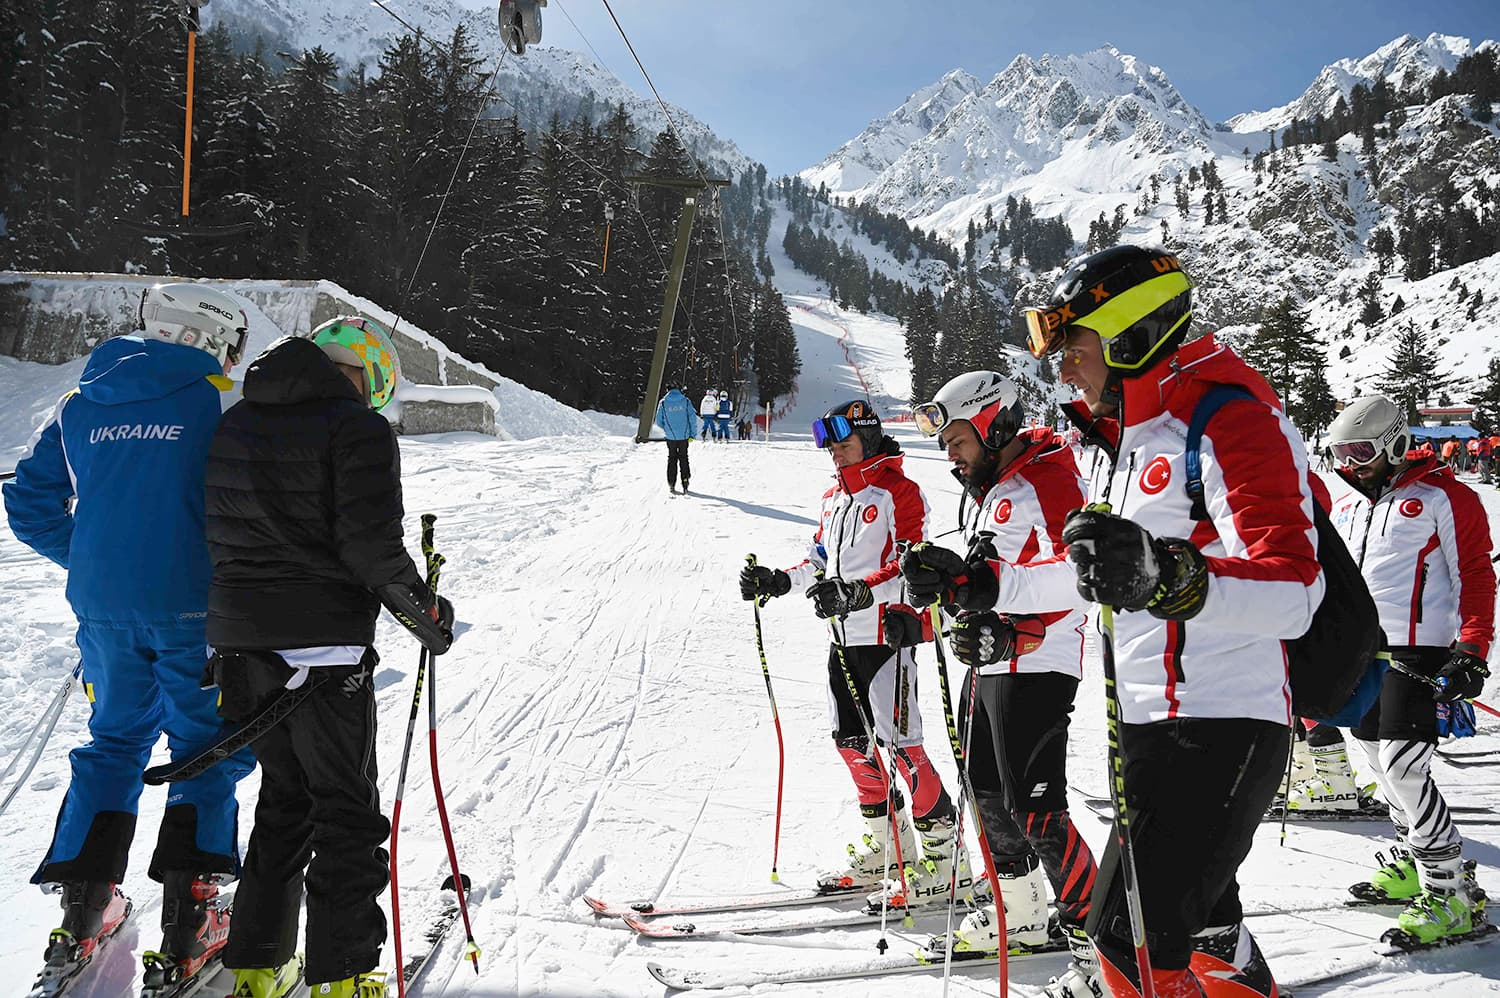 In this picture taken on January 29, 2019, Turkish and Ukrainian skiers make their way to a slope to compete in the CAS Karakoram International Alpine Ski Cup, at the Pakistan Air Force-owned and operated Naltar Ski Resort, some 25km north of Gilgit in Pakistan's remote mountainous north. - Dozens of skiers in late January took part in a rare international competition in Pakistan, which boasts some of the world's highest mountains but remains off-piste for most winter sportsmen due to years of insecurity and lack o